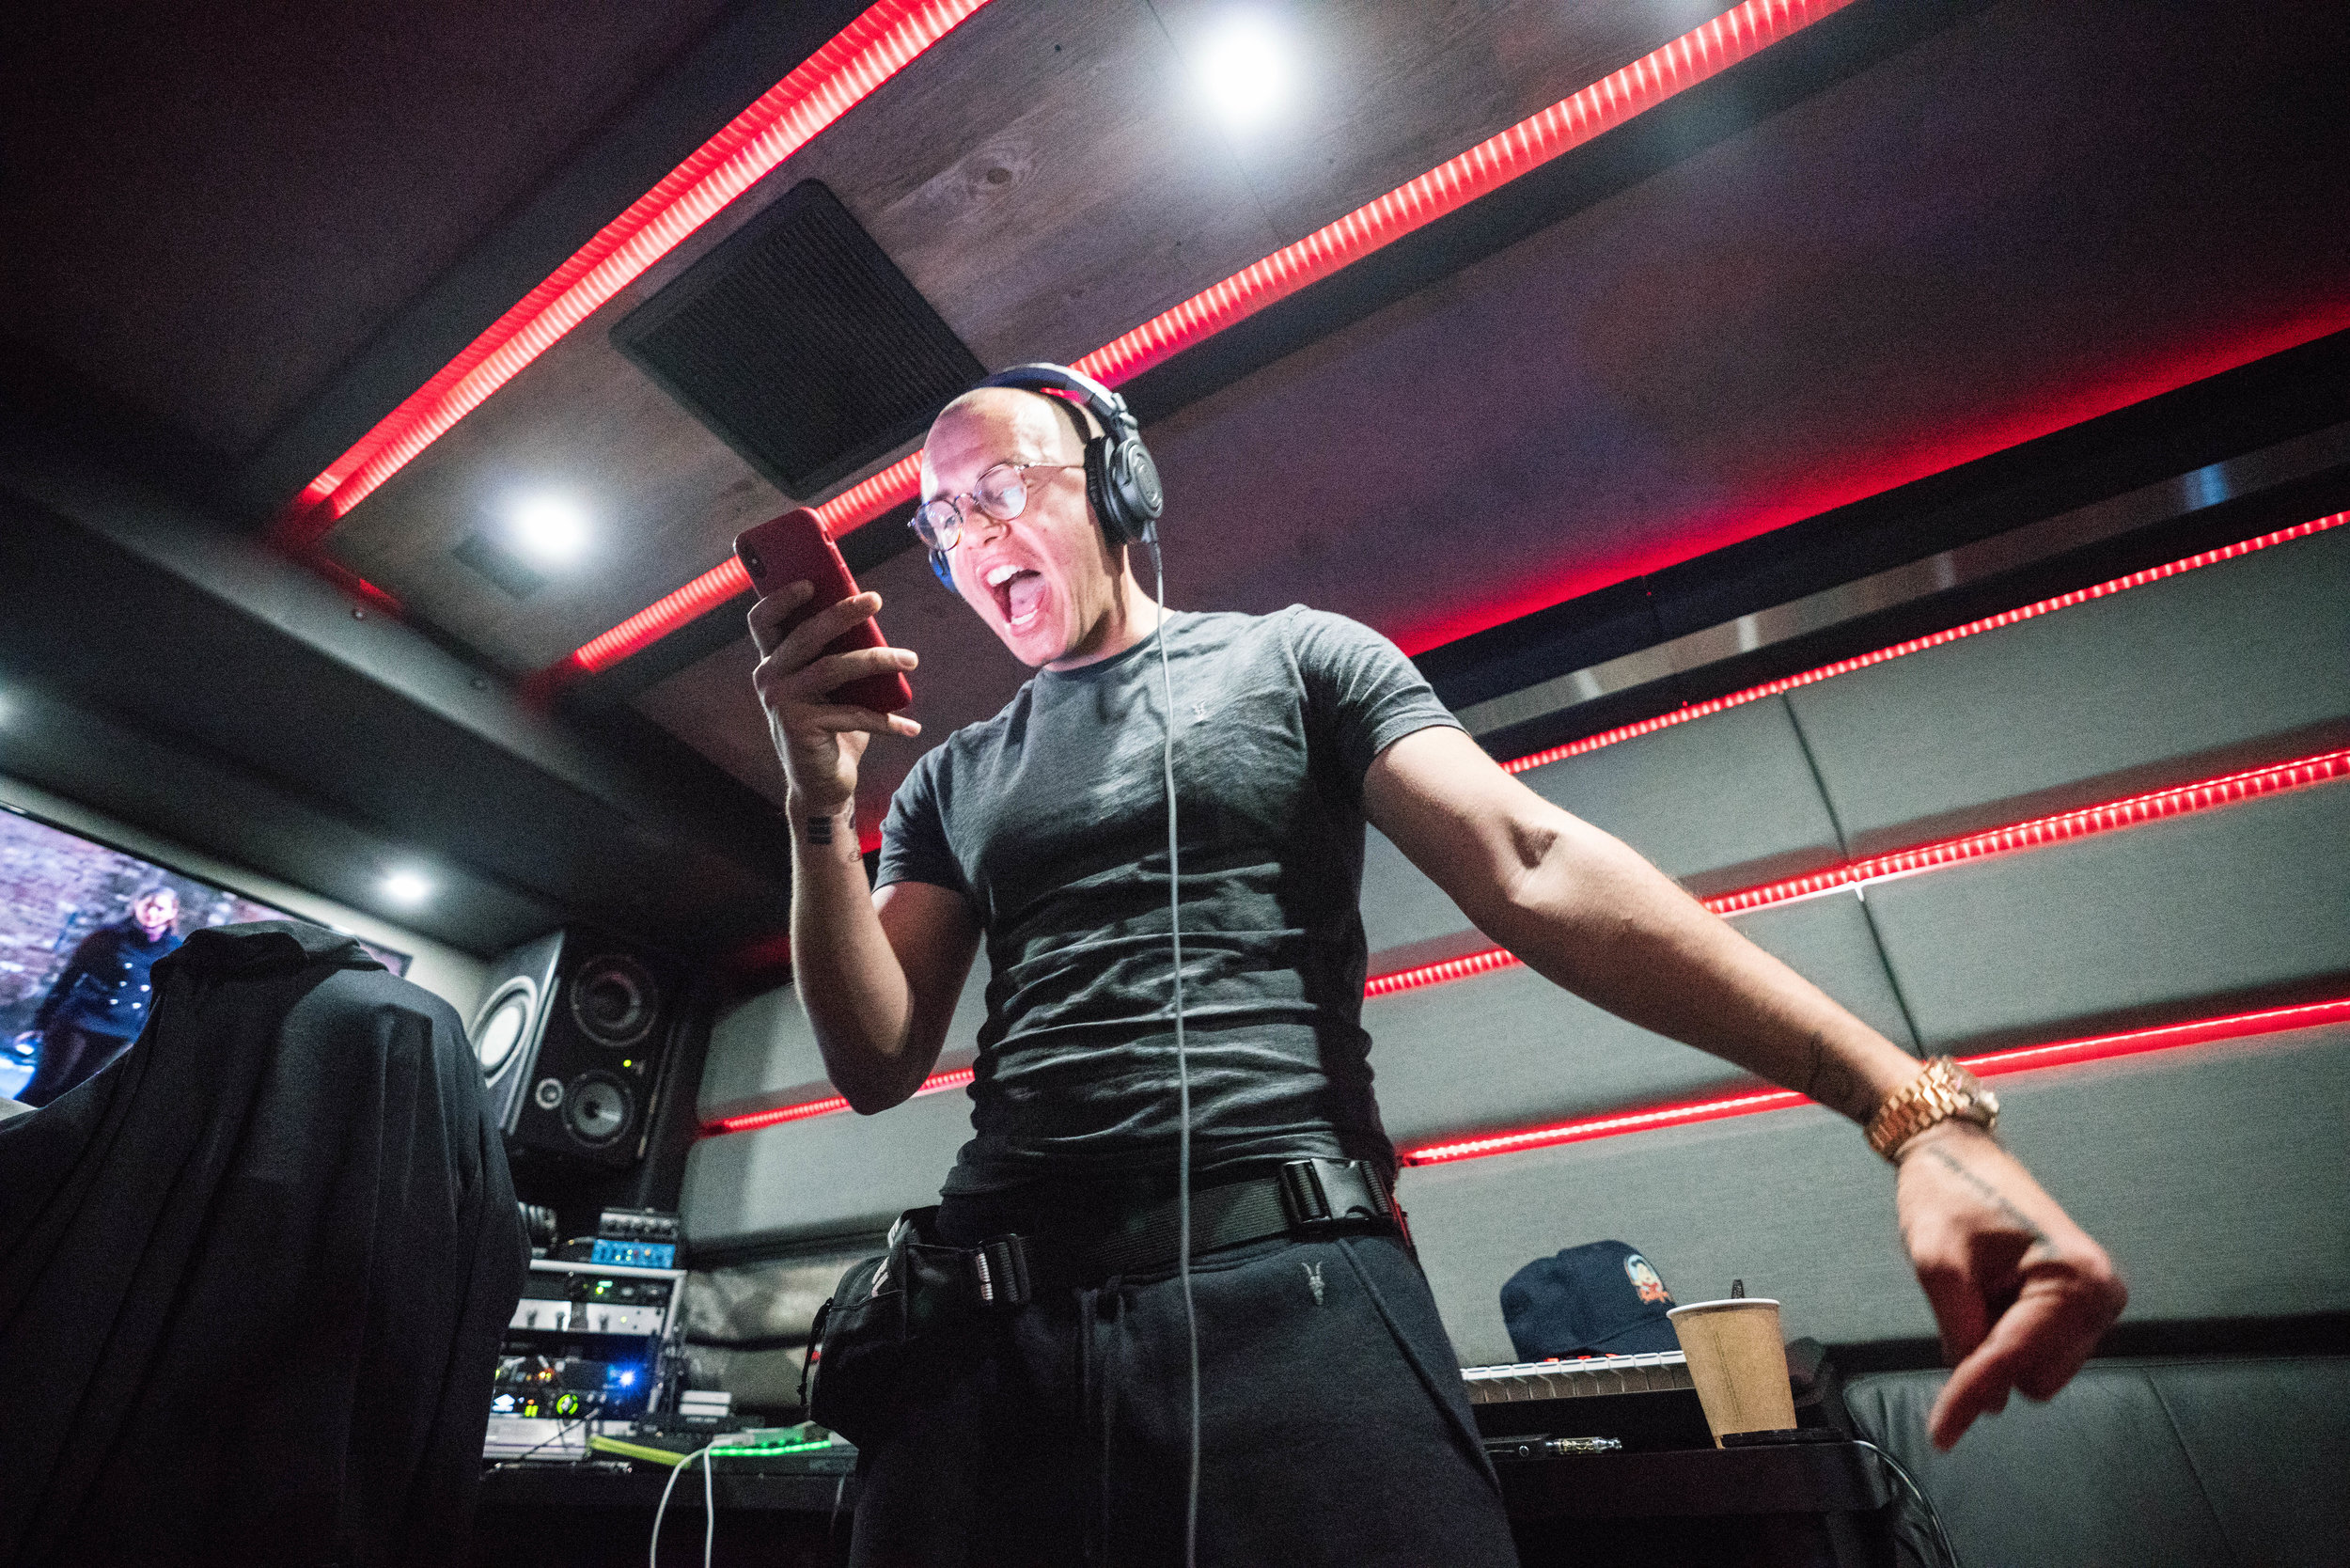 Logic recording on the studio bus for one of his new projects, 2018